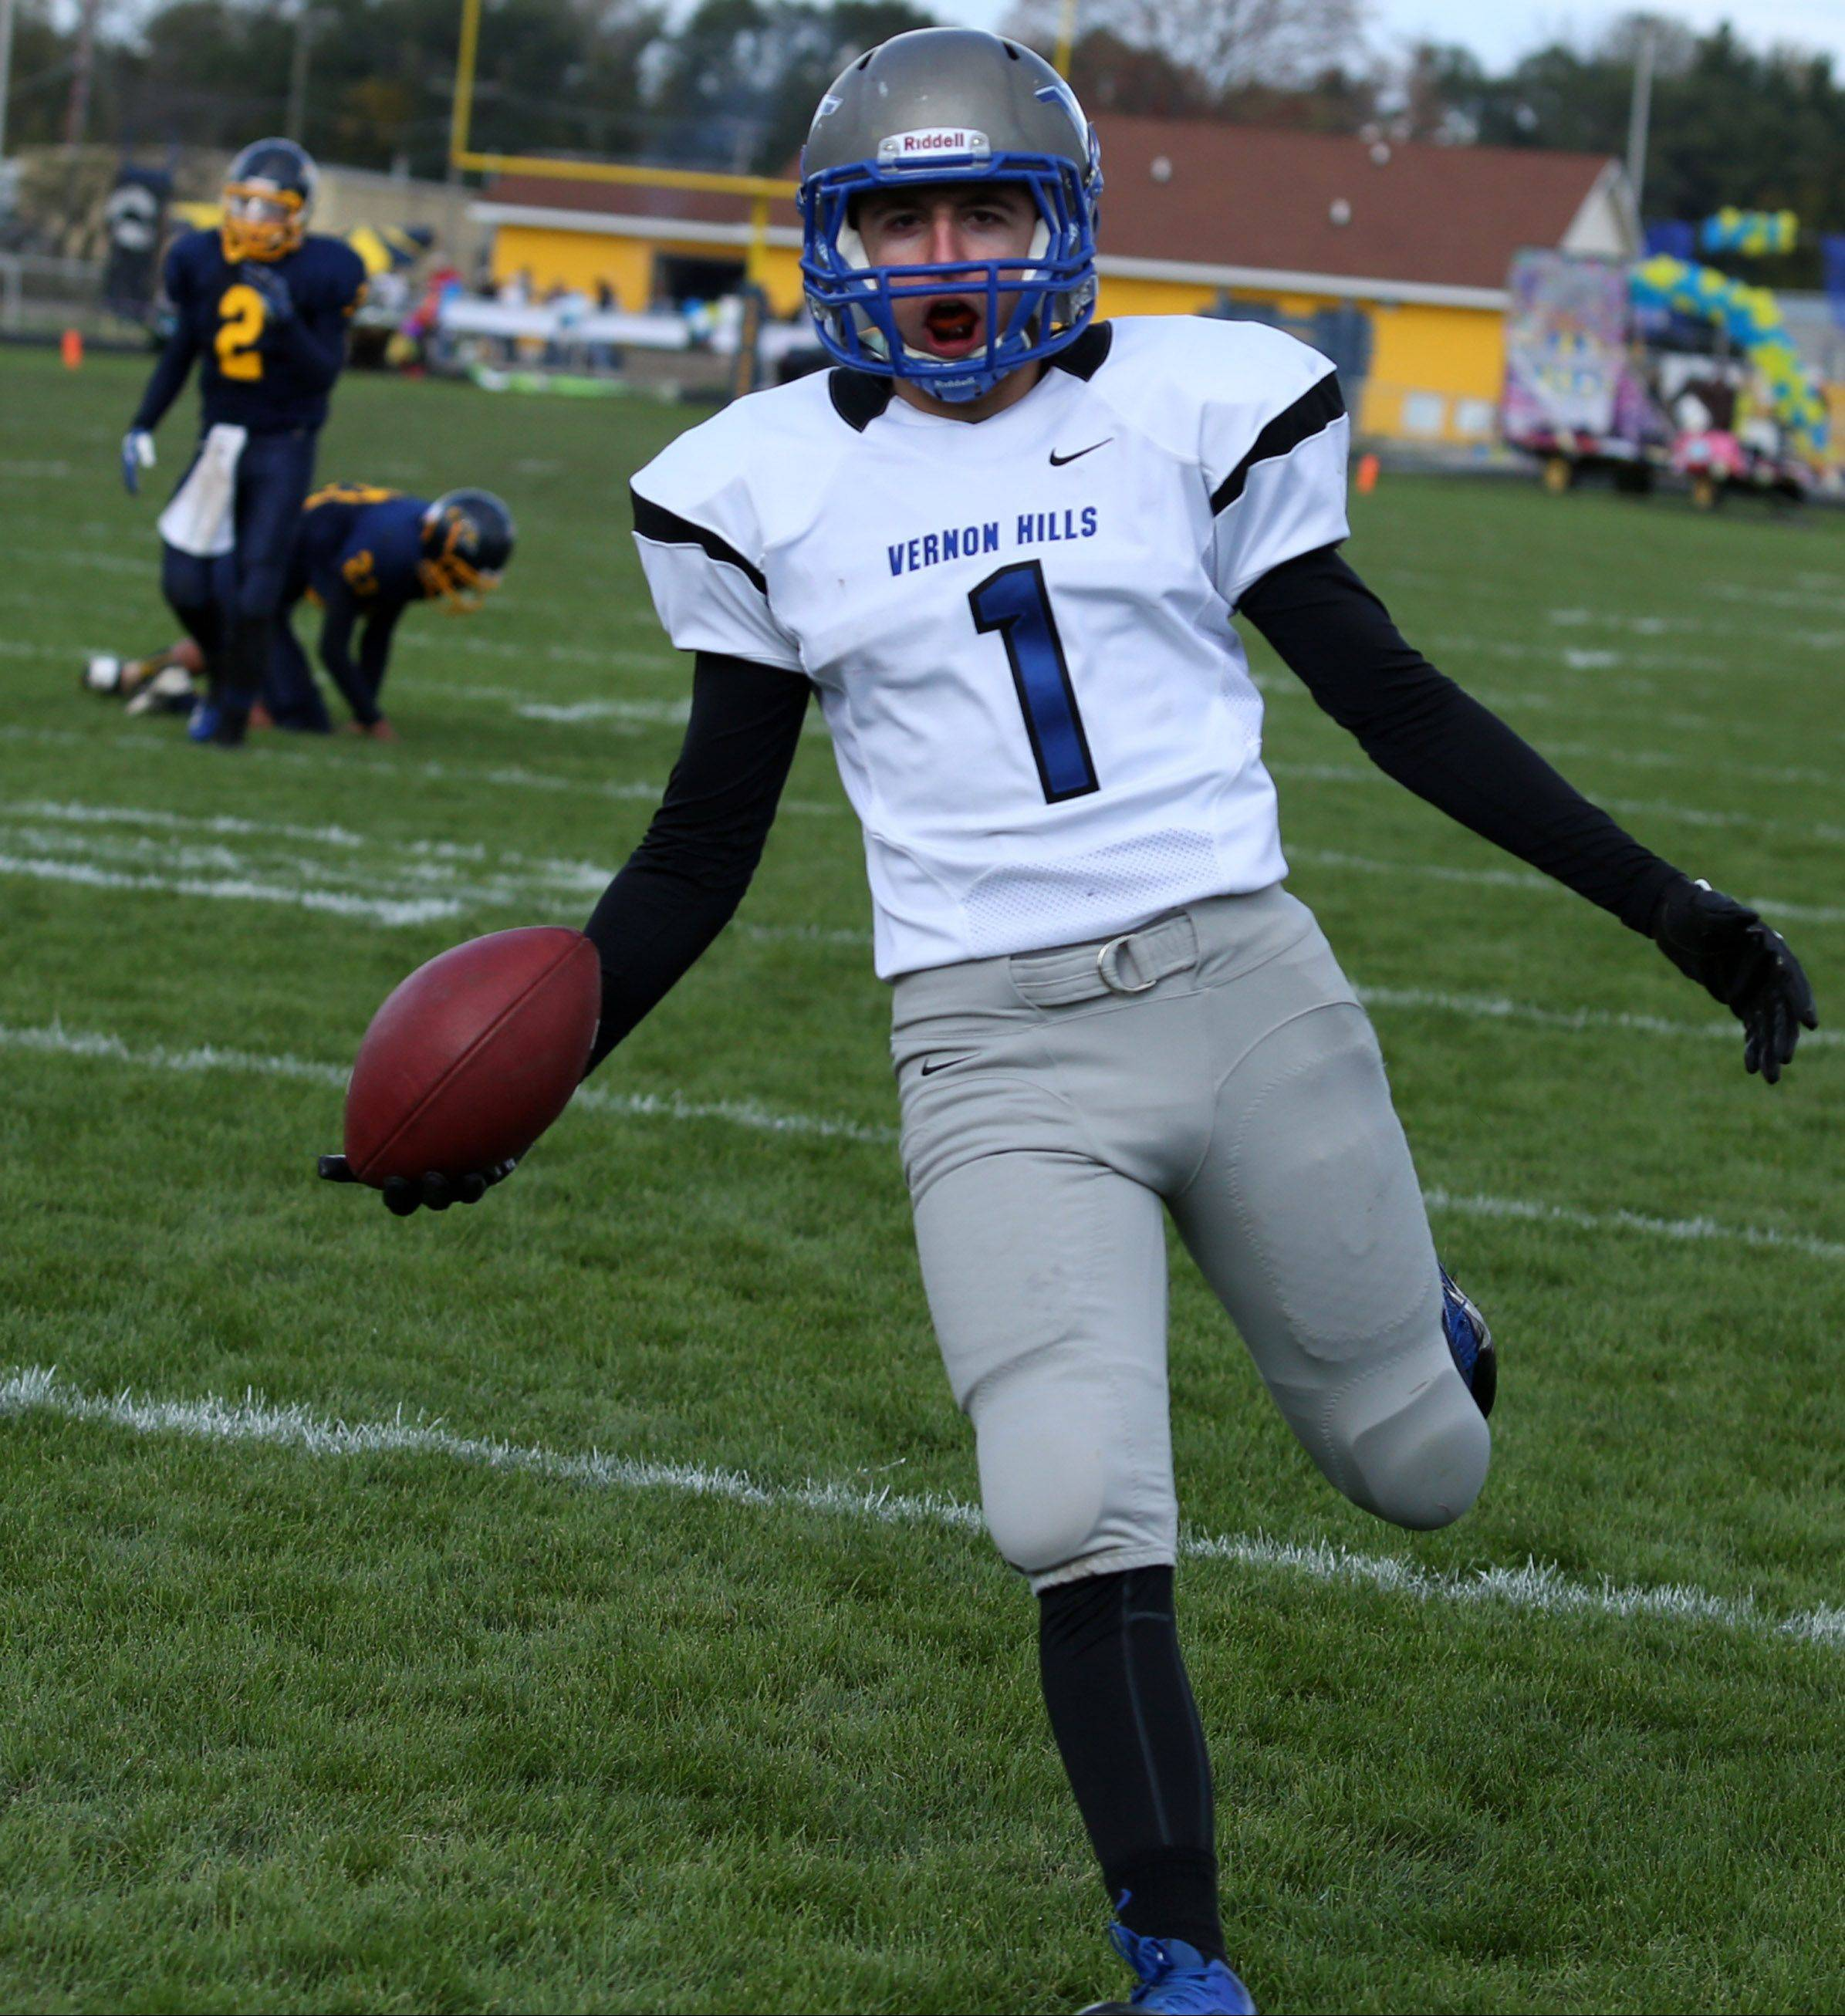 Vernon Hills receiver Robby Nardini celebrates as he crosses the goal line against host Round Lake on Saturday.